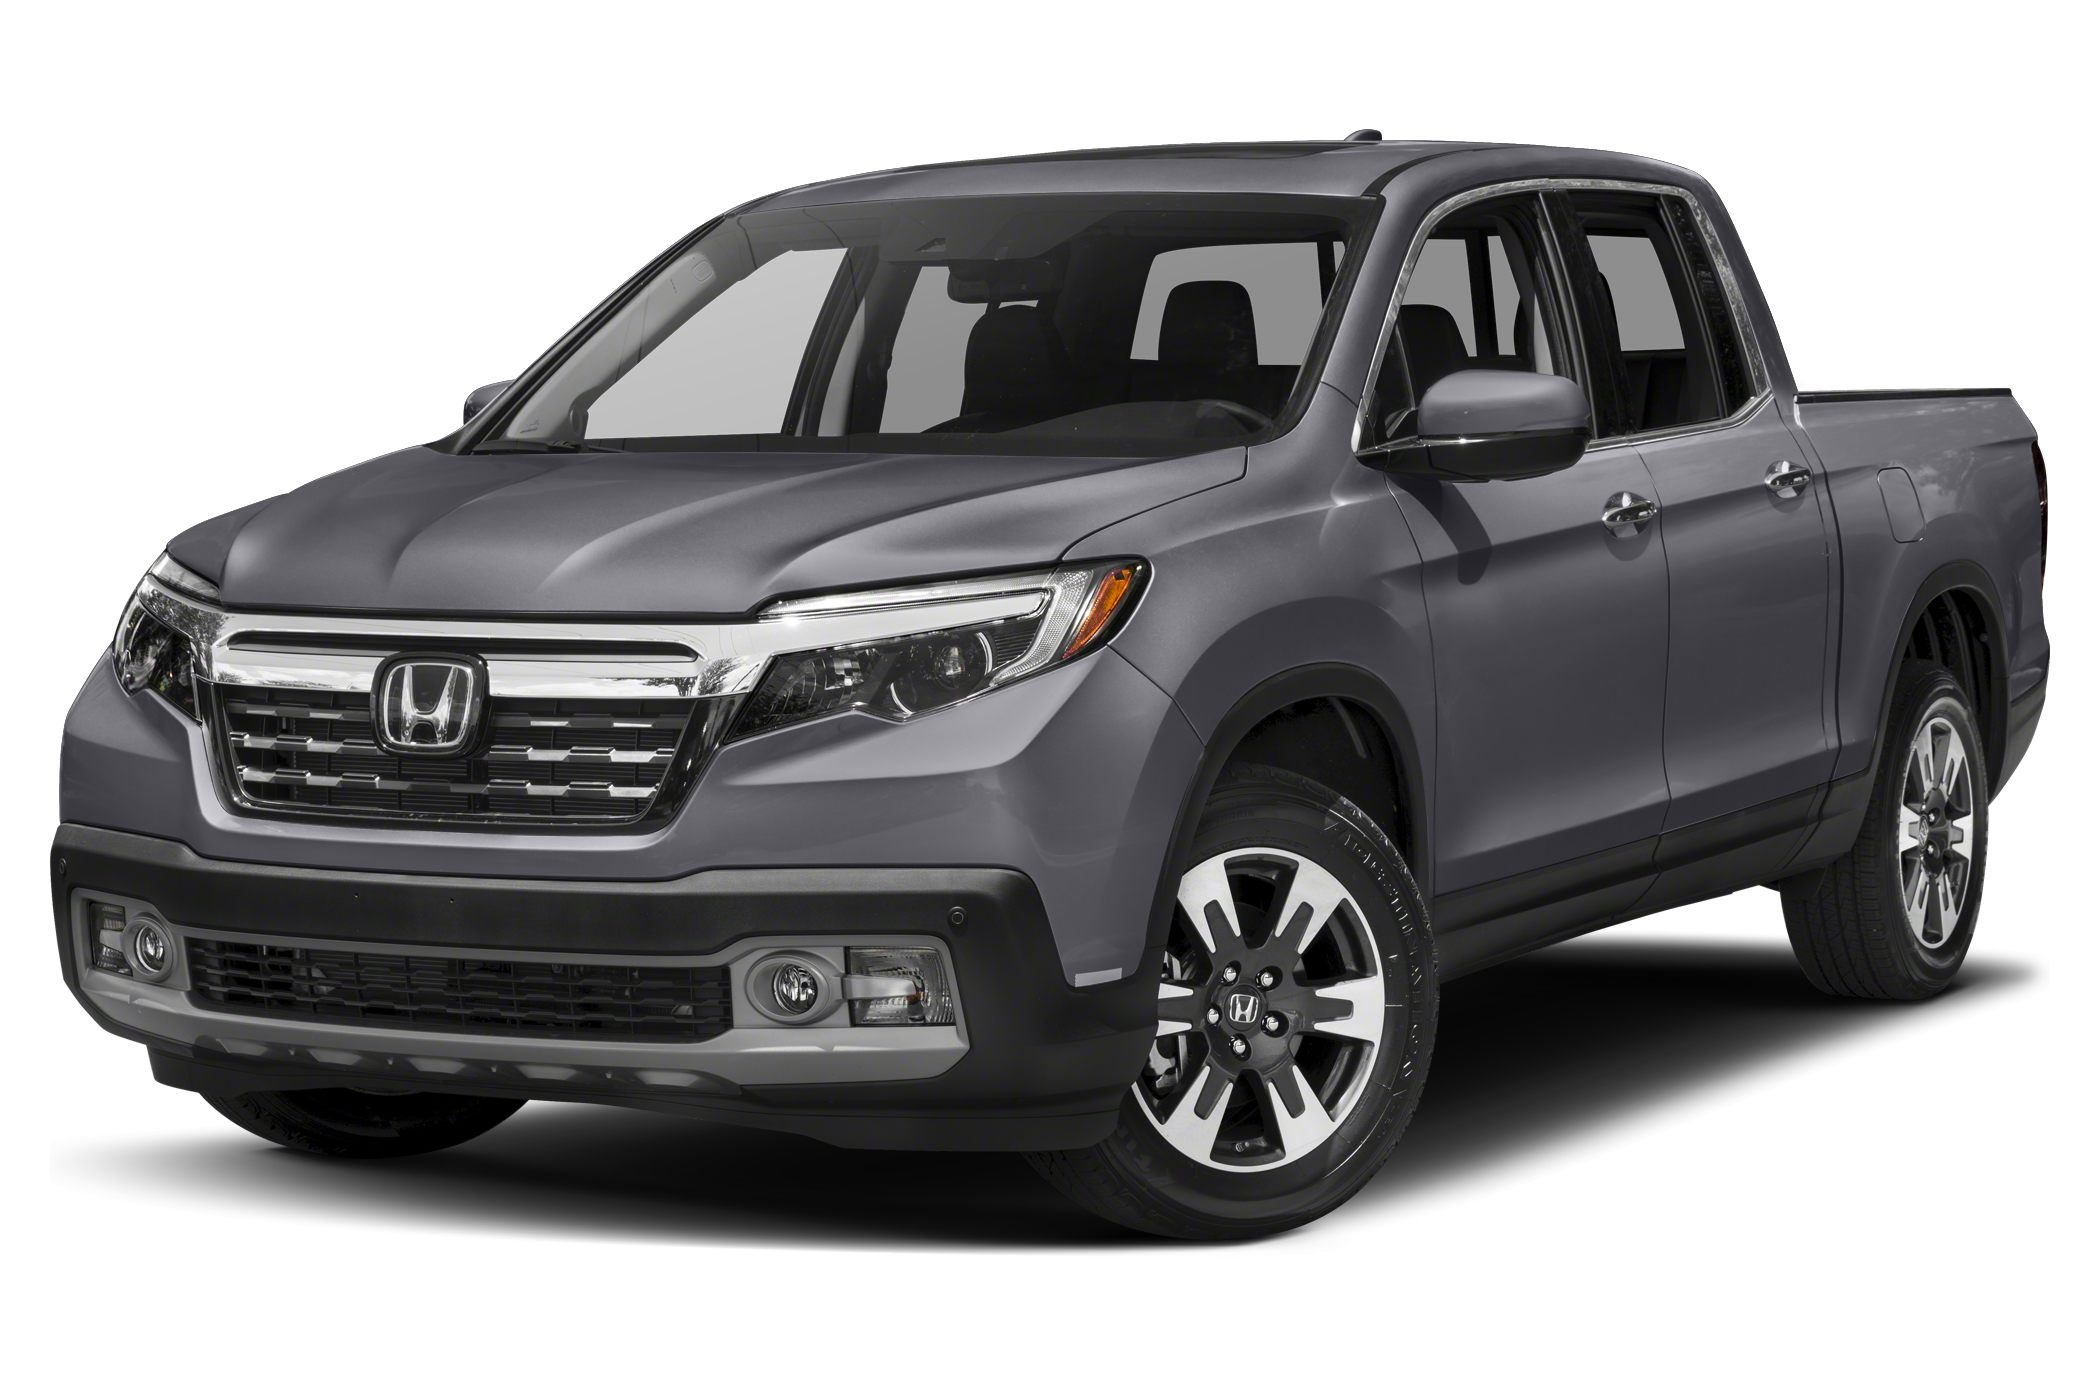 2017 Honda Ridgeline RTL-E Gray Leather Provides peaceful passage Kept in good repair by the dea